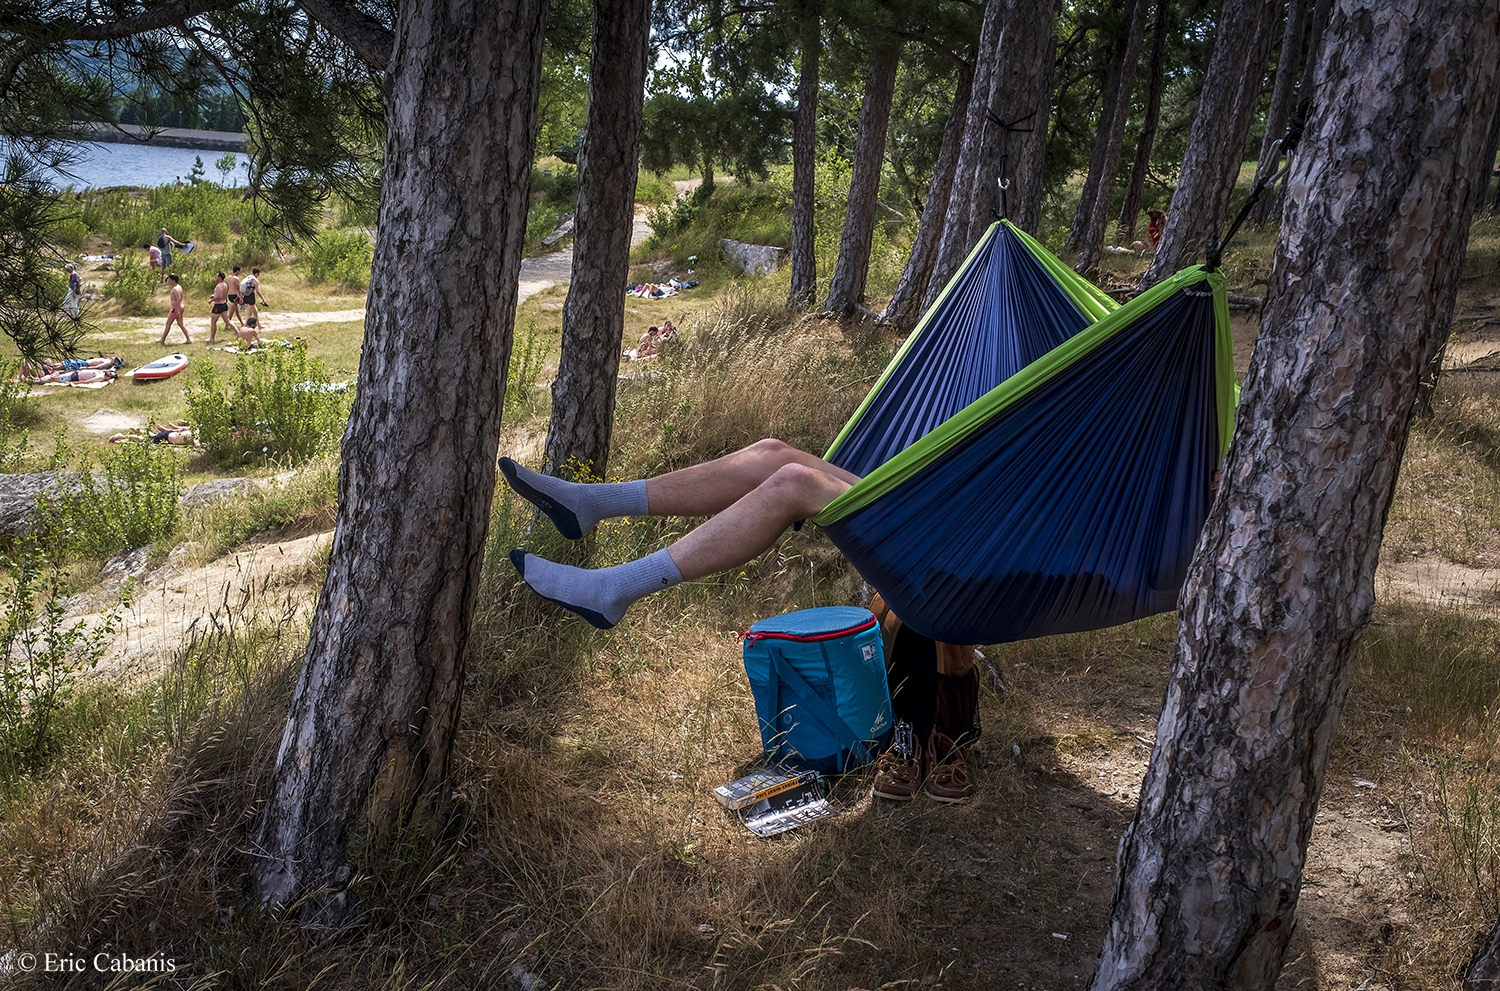 In the woods surrounding Lake Saint-Ferréol in the south of France, a man rests in his hammock in June 2019.Photojournalism Streetphotography Eric Cabanis